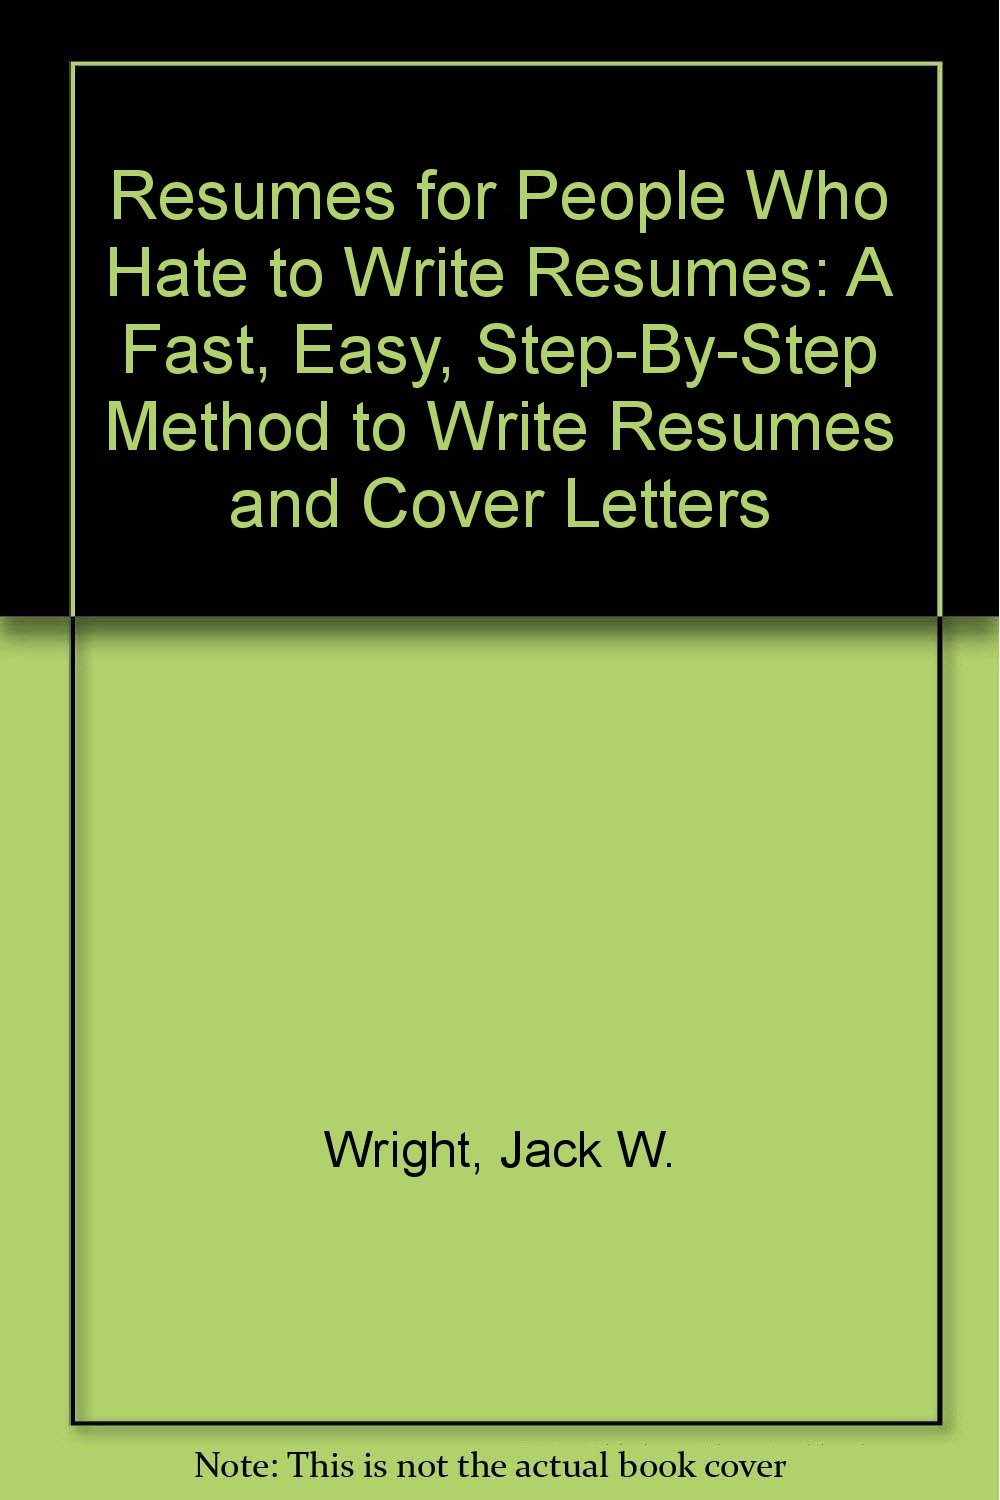 Resumes For People Who Hate To Write Resumes: A Fast, Easy, Step By Step  Method To Write Resumes And Cover Letters: Jack W. Wright: 9780944020036:  ...